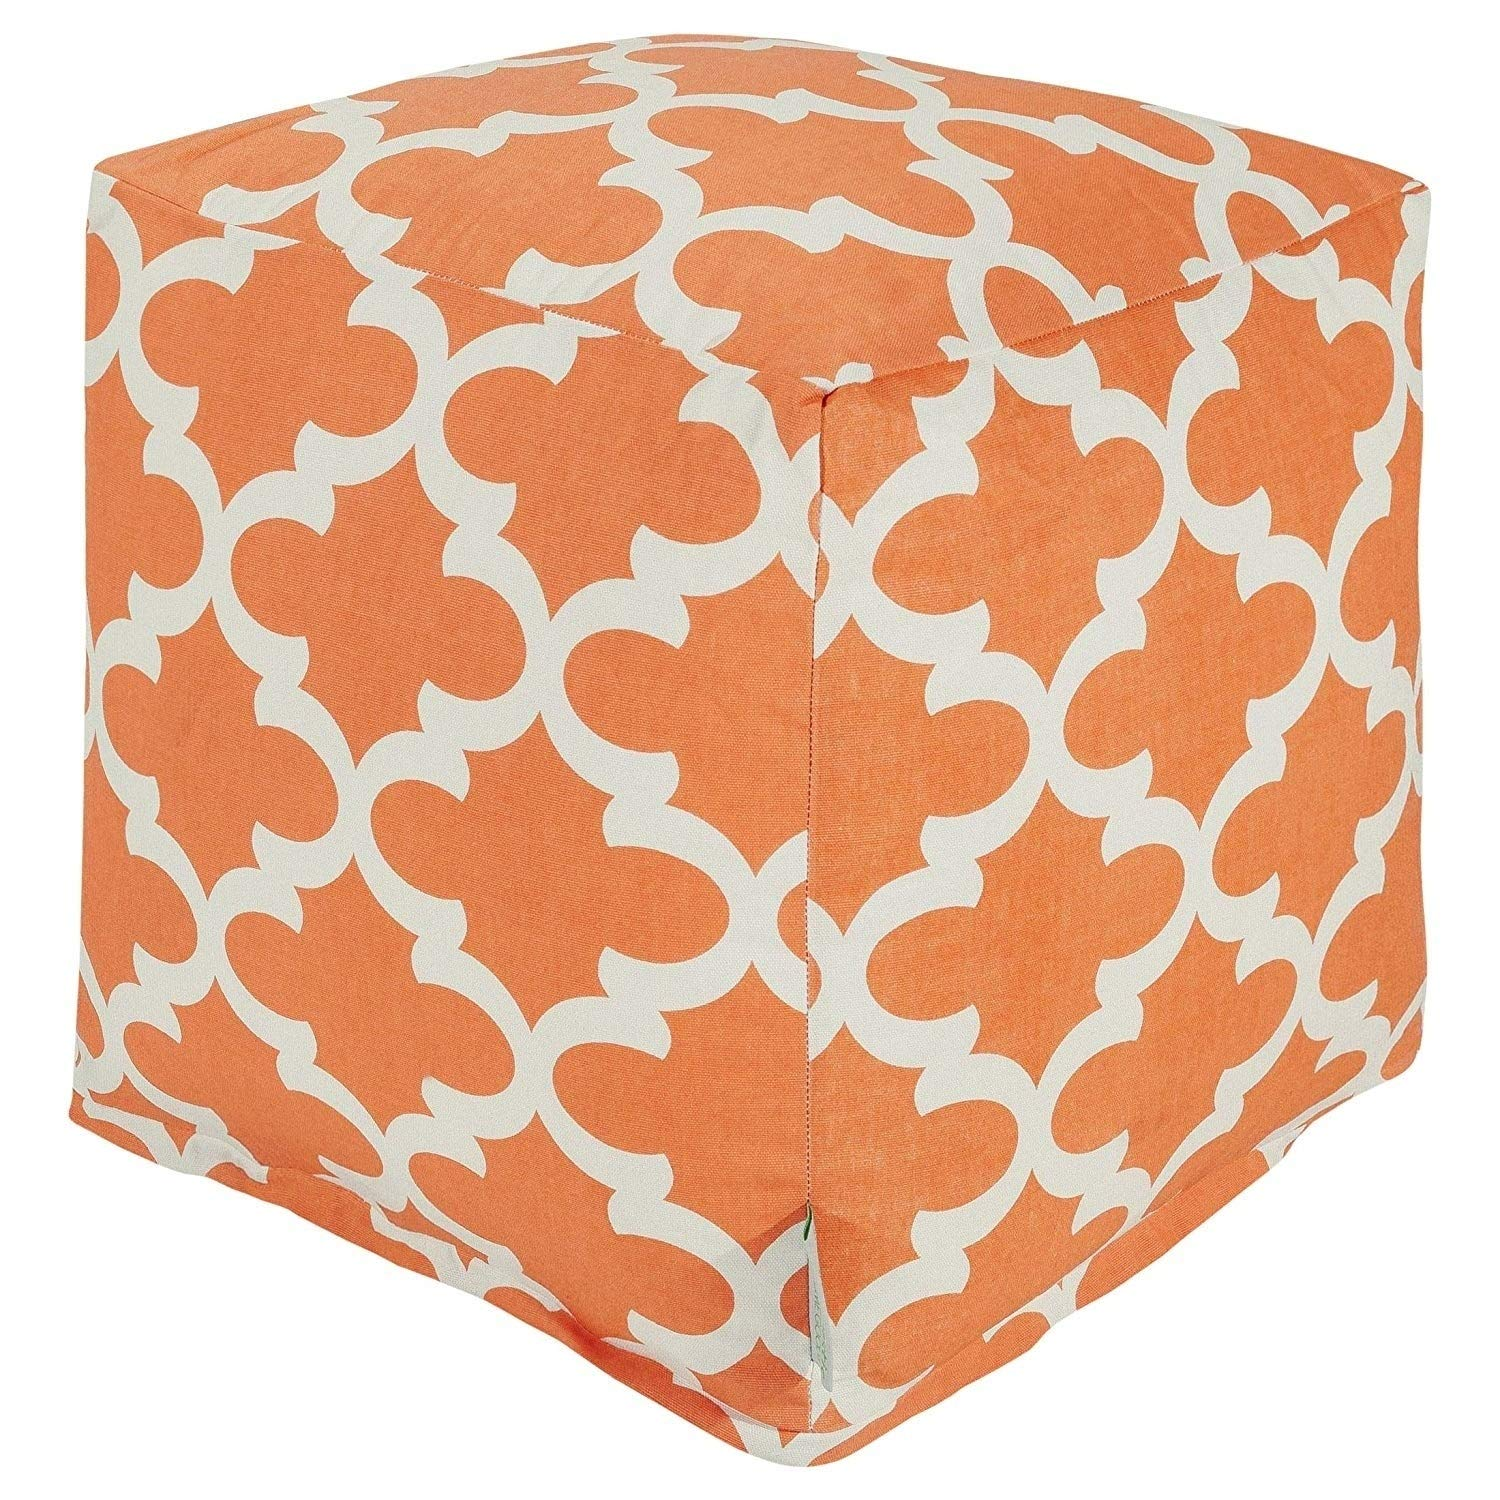 Majestic Home Goods Peach Trellis Indoor/Outdoor Bean Bag Ottoman Pouf Cube 17'' L x 17'' W x 17'' H by Majestic Home Goods